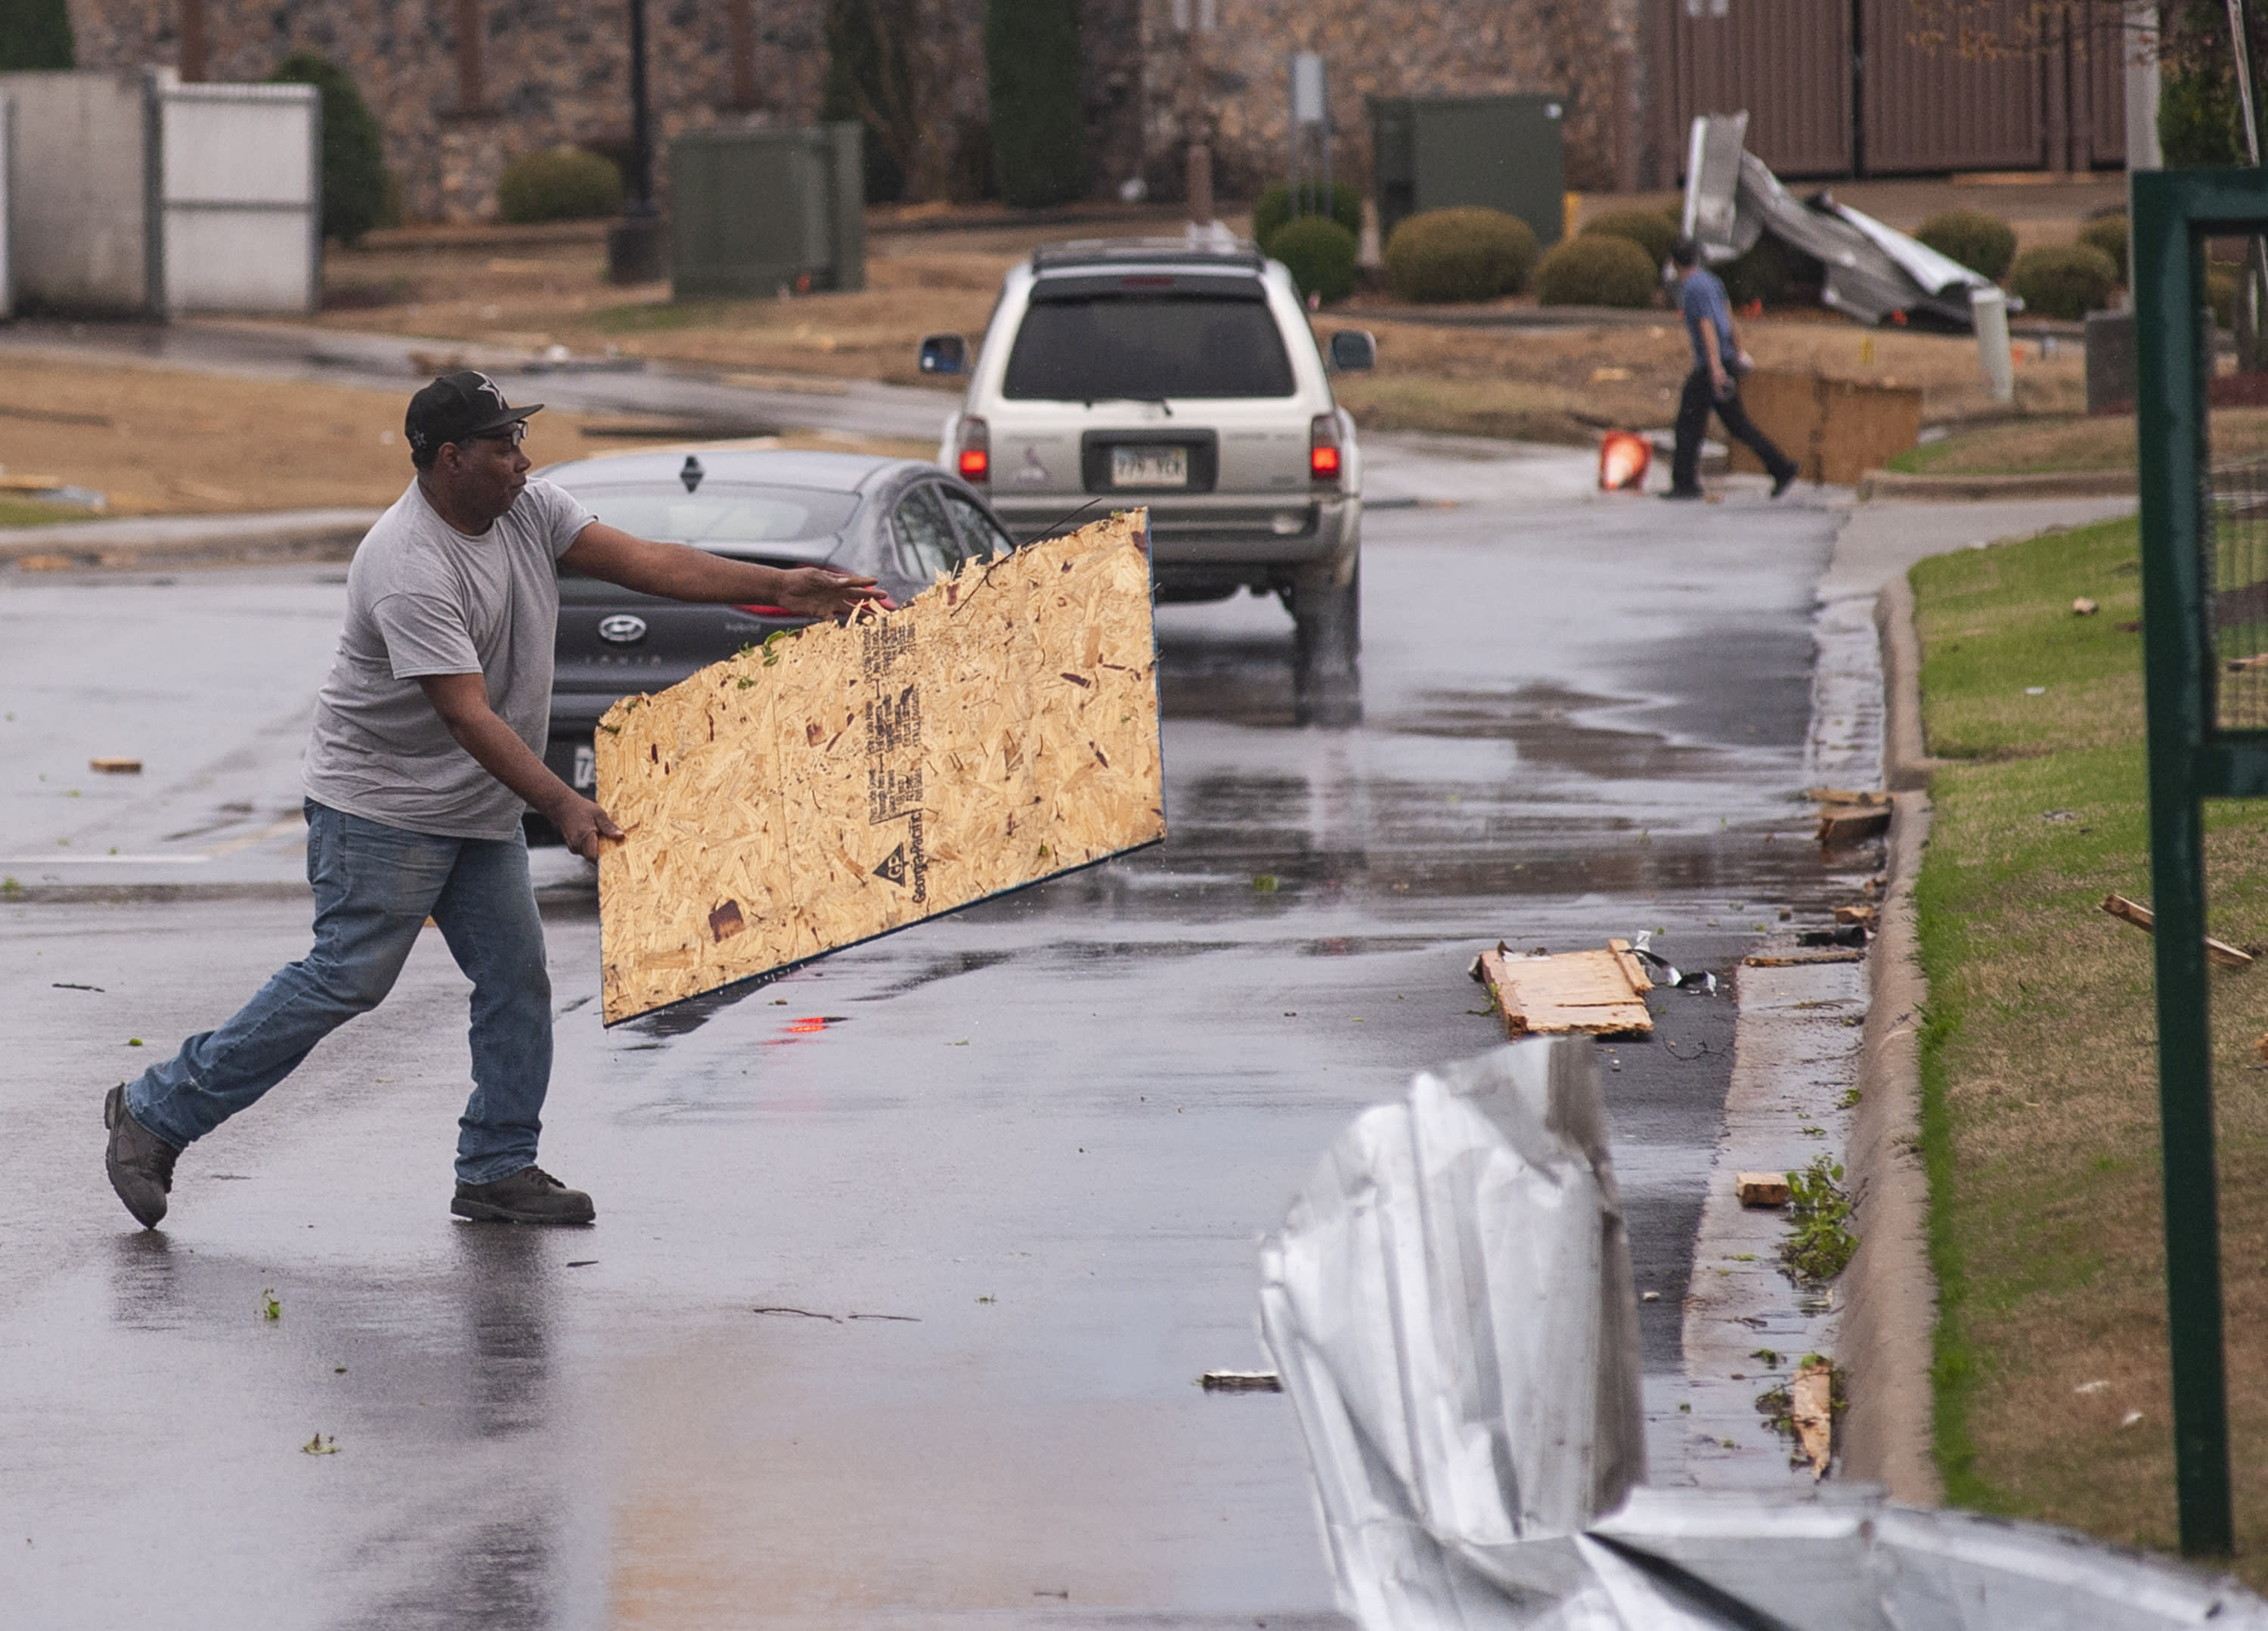 Darrell Britt gets out of his vehicle to move debris as motorists are directed to drive through the parking lot at The Mall at Turtle Creek after a tornado touched down Saturday, March 28, 2020, in Jonesboro, Ark. (Quentin Winstine/The Jonesboro Sun via AP)